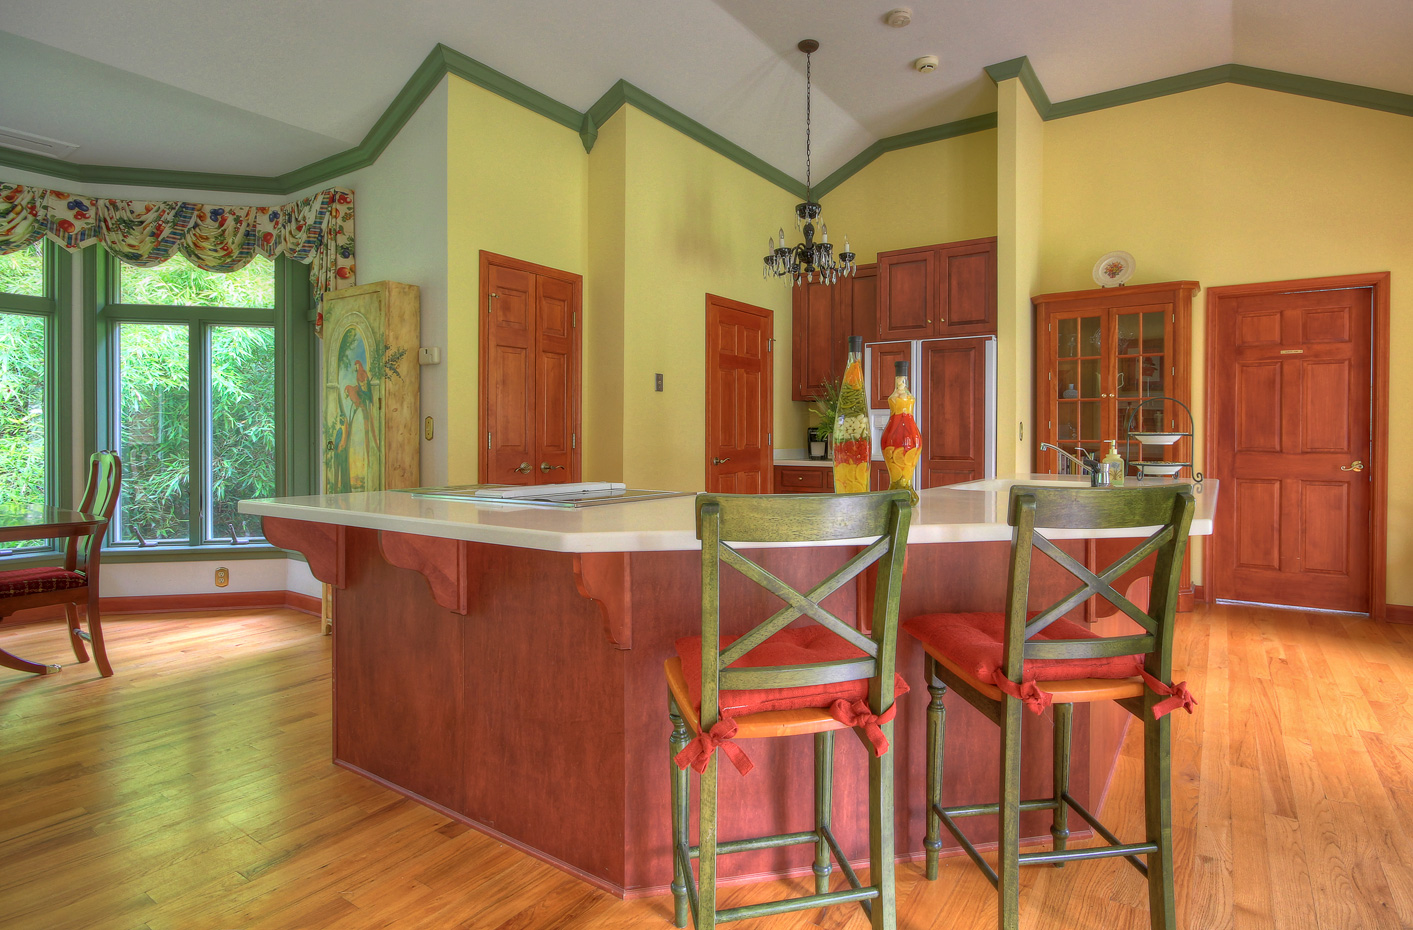 kitchen island area with bar stools in main house at combsberry inn